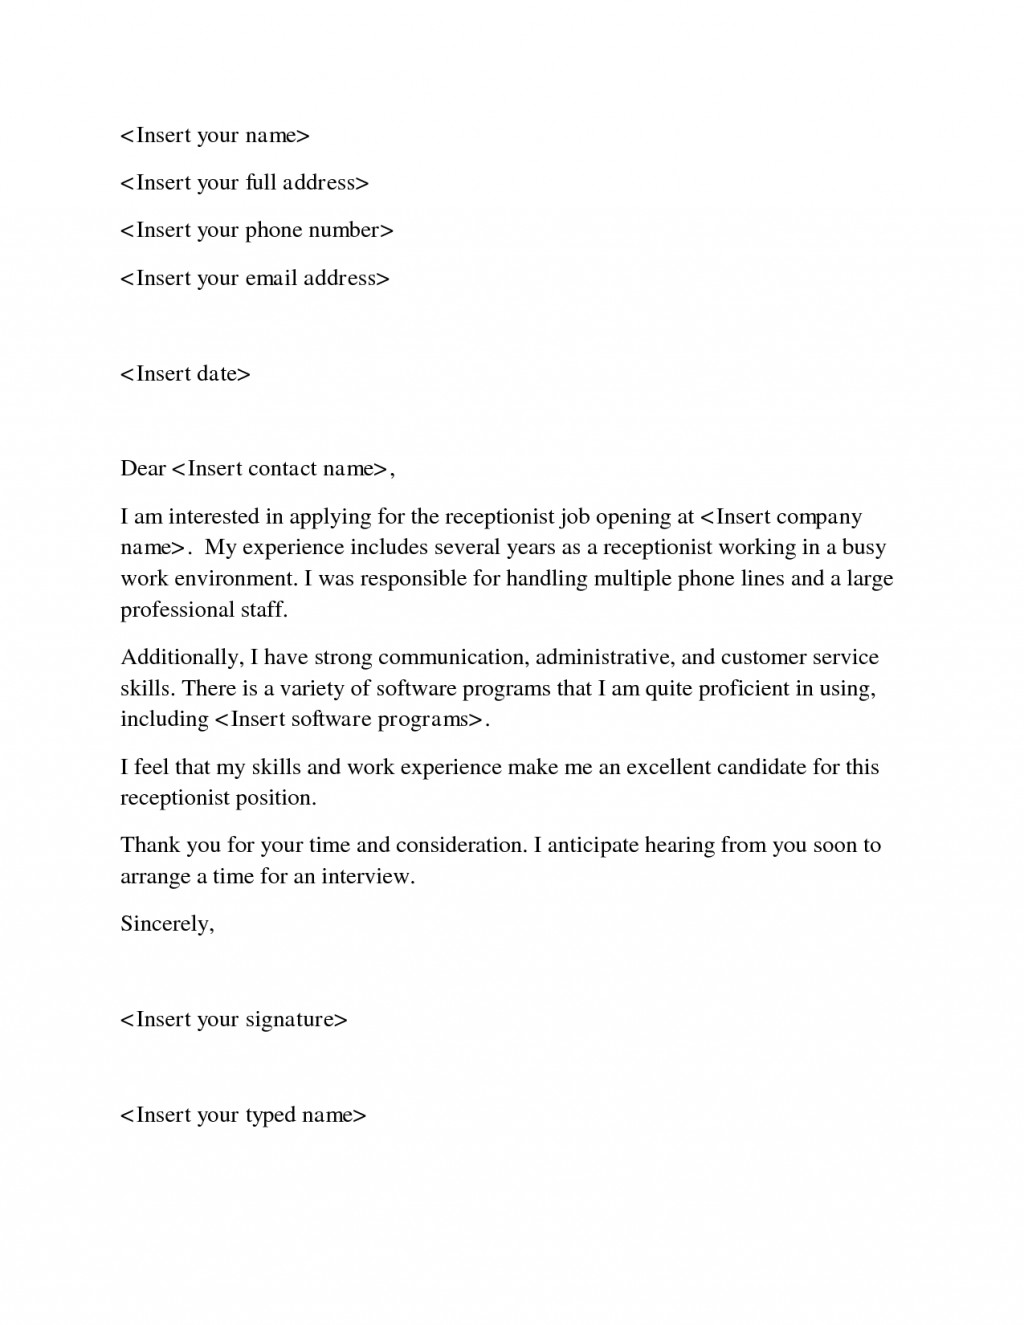 003 Essay Example Cover Letter Singular For Competition Scientific Paper Submission College Large